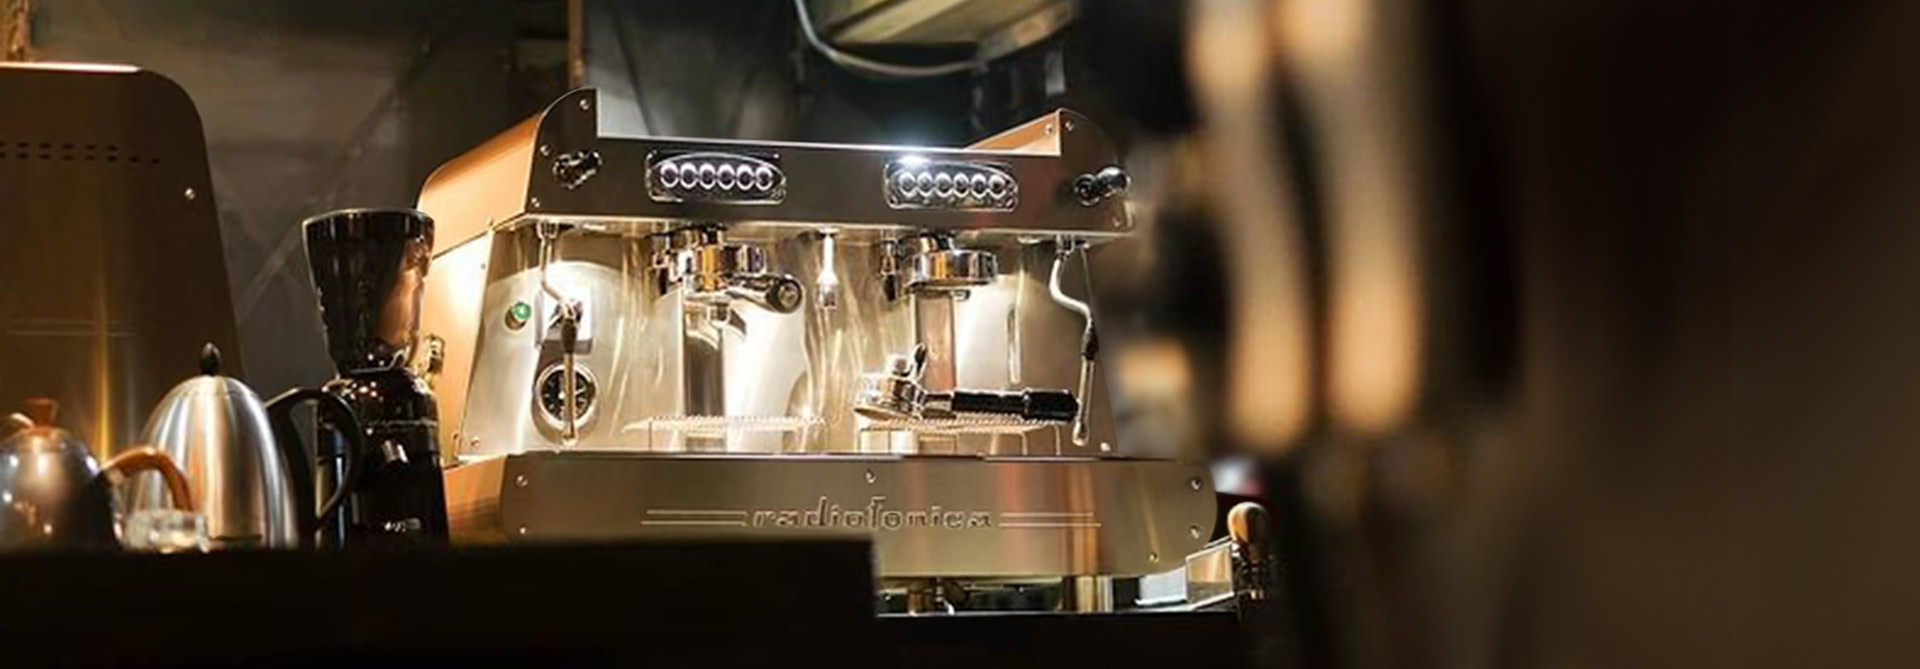 Radiofonica-2-groups-E61-professional-Orchestrale-coffee-machine-09